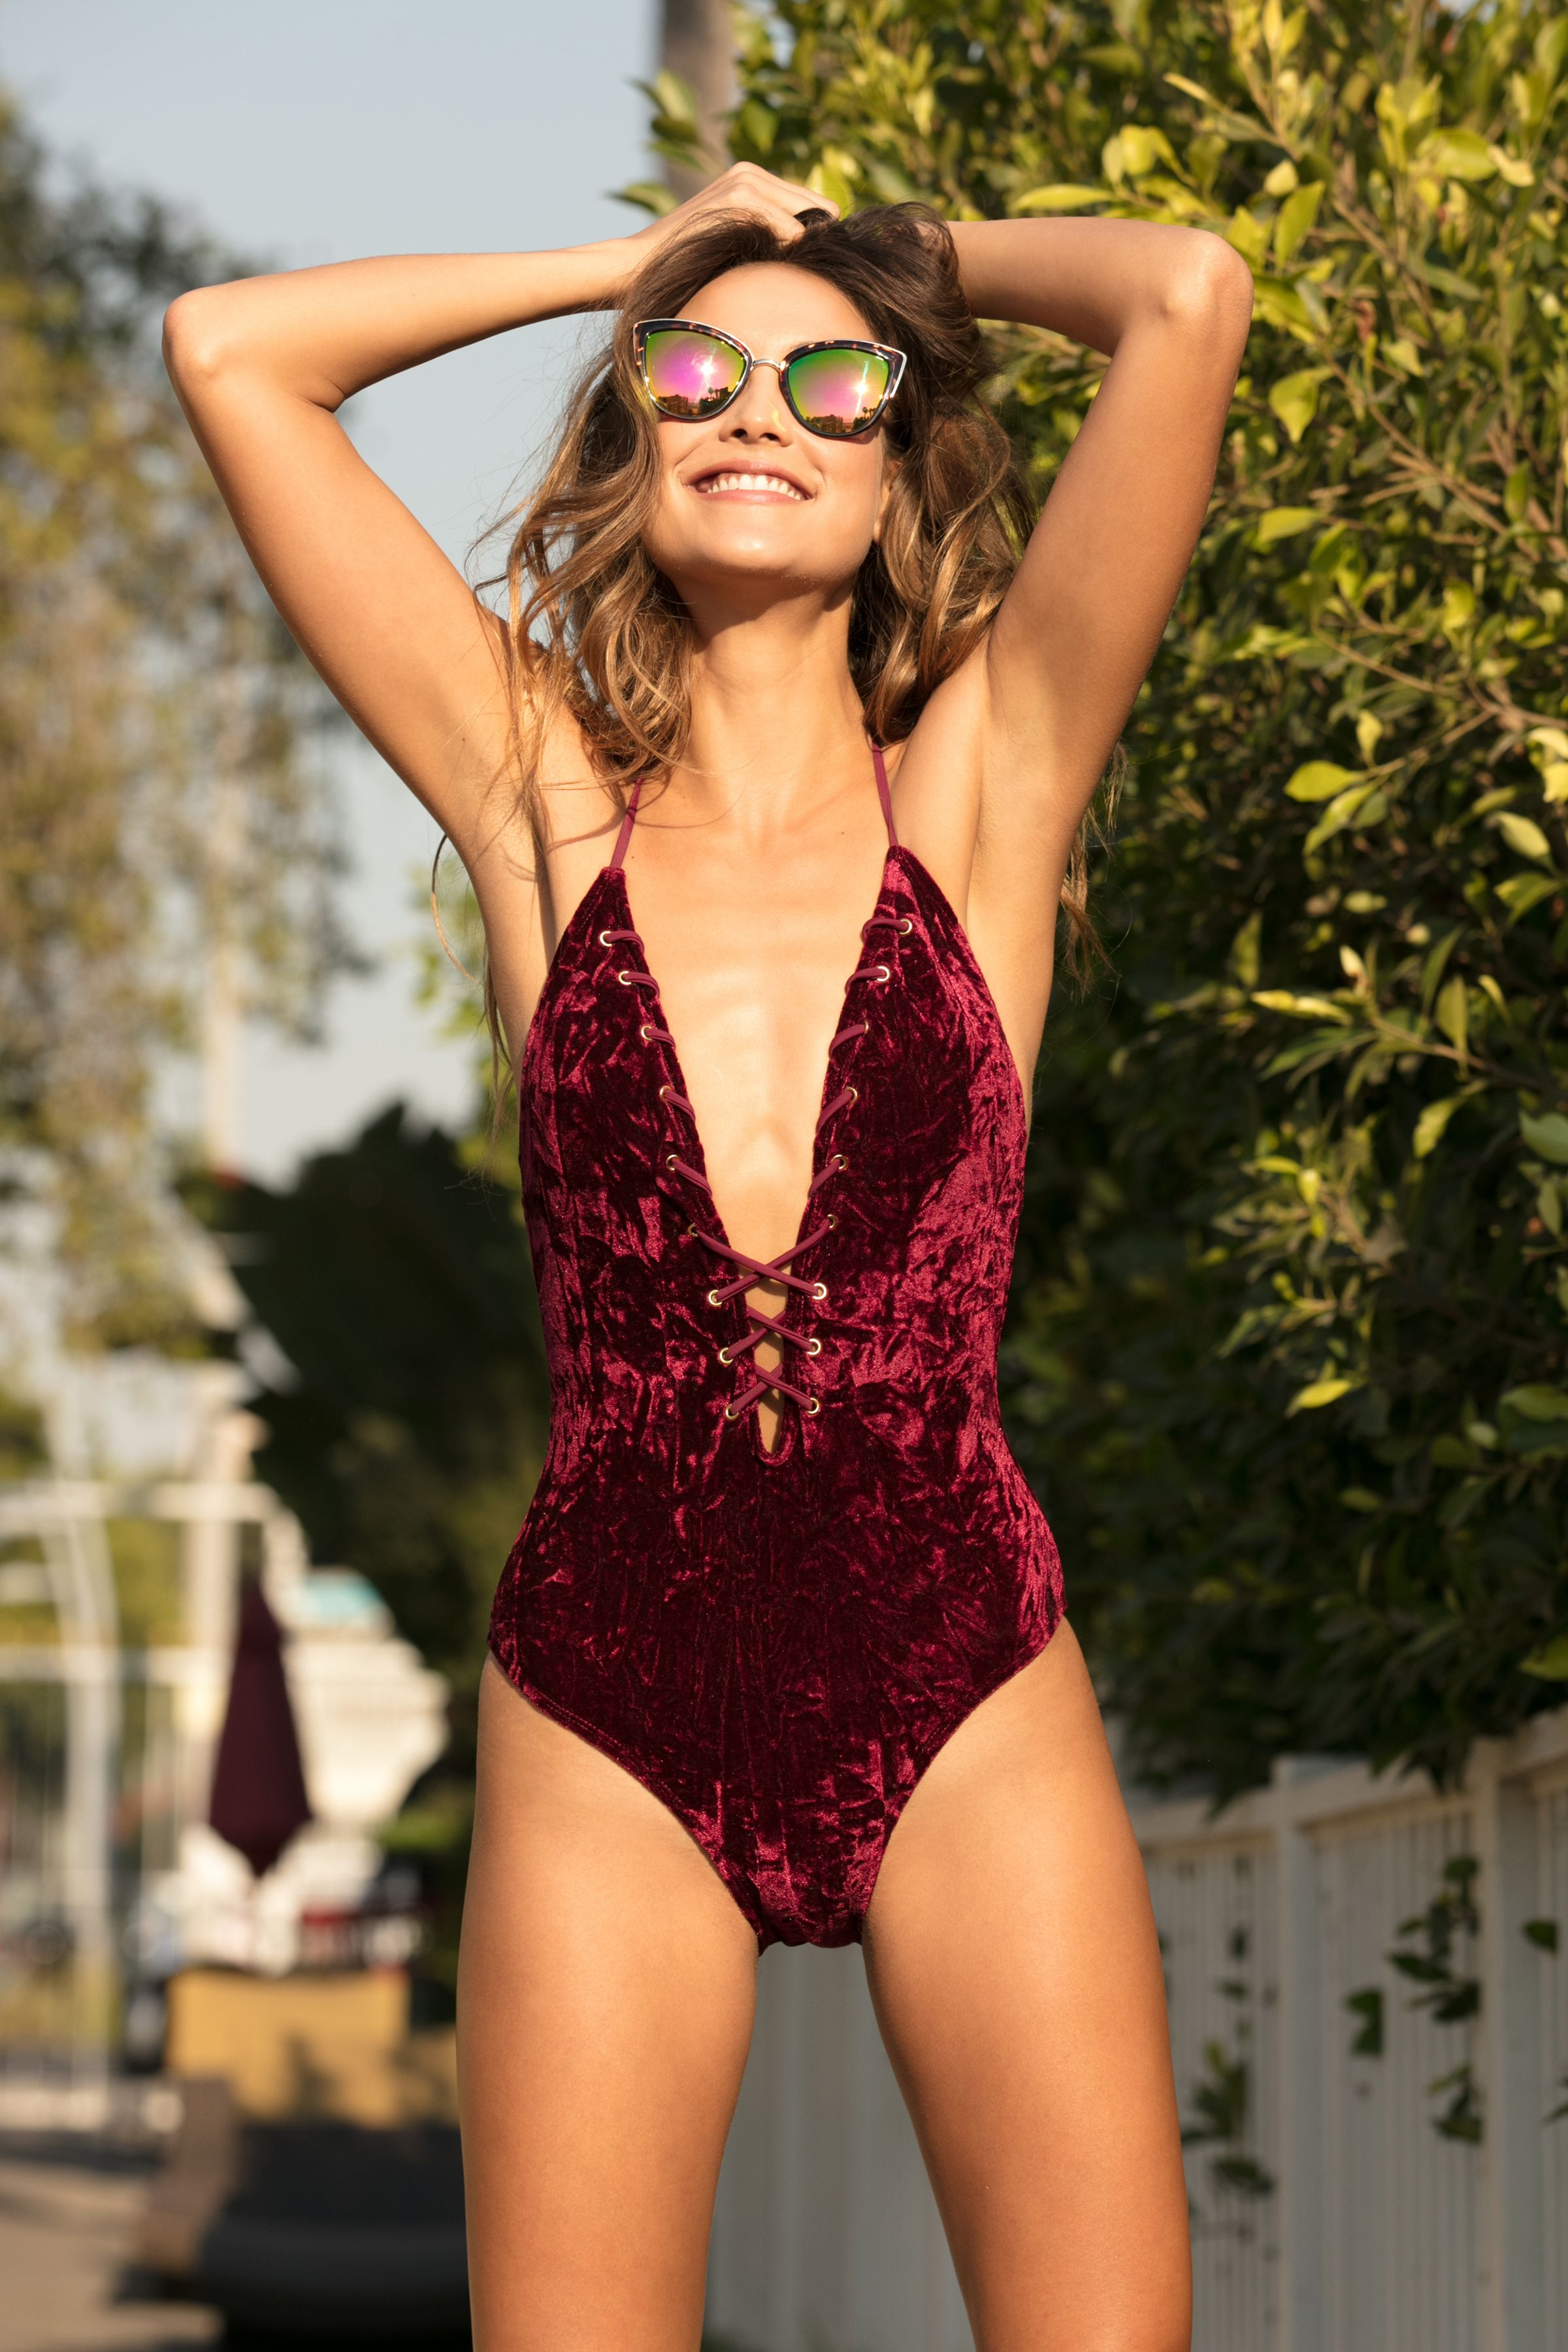 2616c4f8e4fb7 ... One Piece with Lace Up Detail - Cabana Del Sol. Elevate your swimwear  game with this crushed velvet swimsuit! #swimwear #swimsuit #fashion # shopping ...